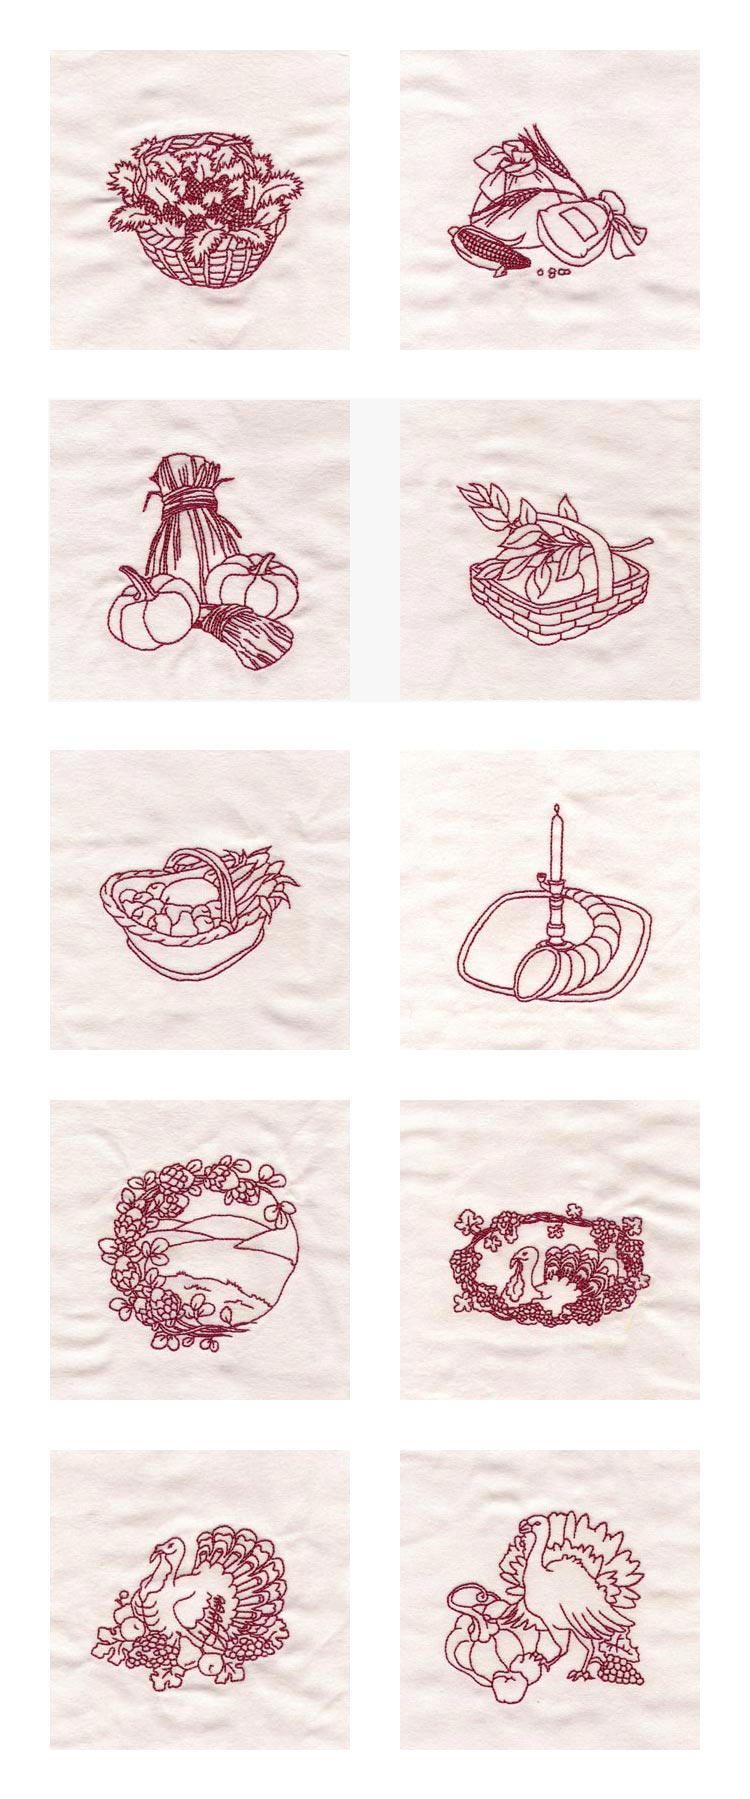 Embroidery machine designs thanksgiving line art set